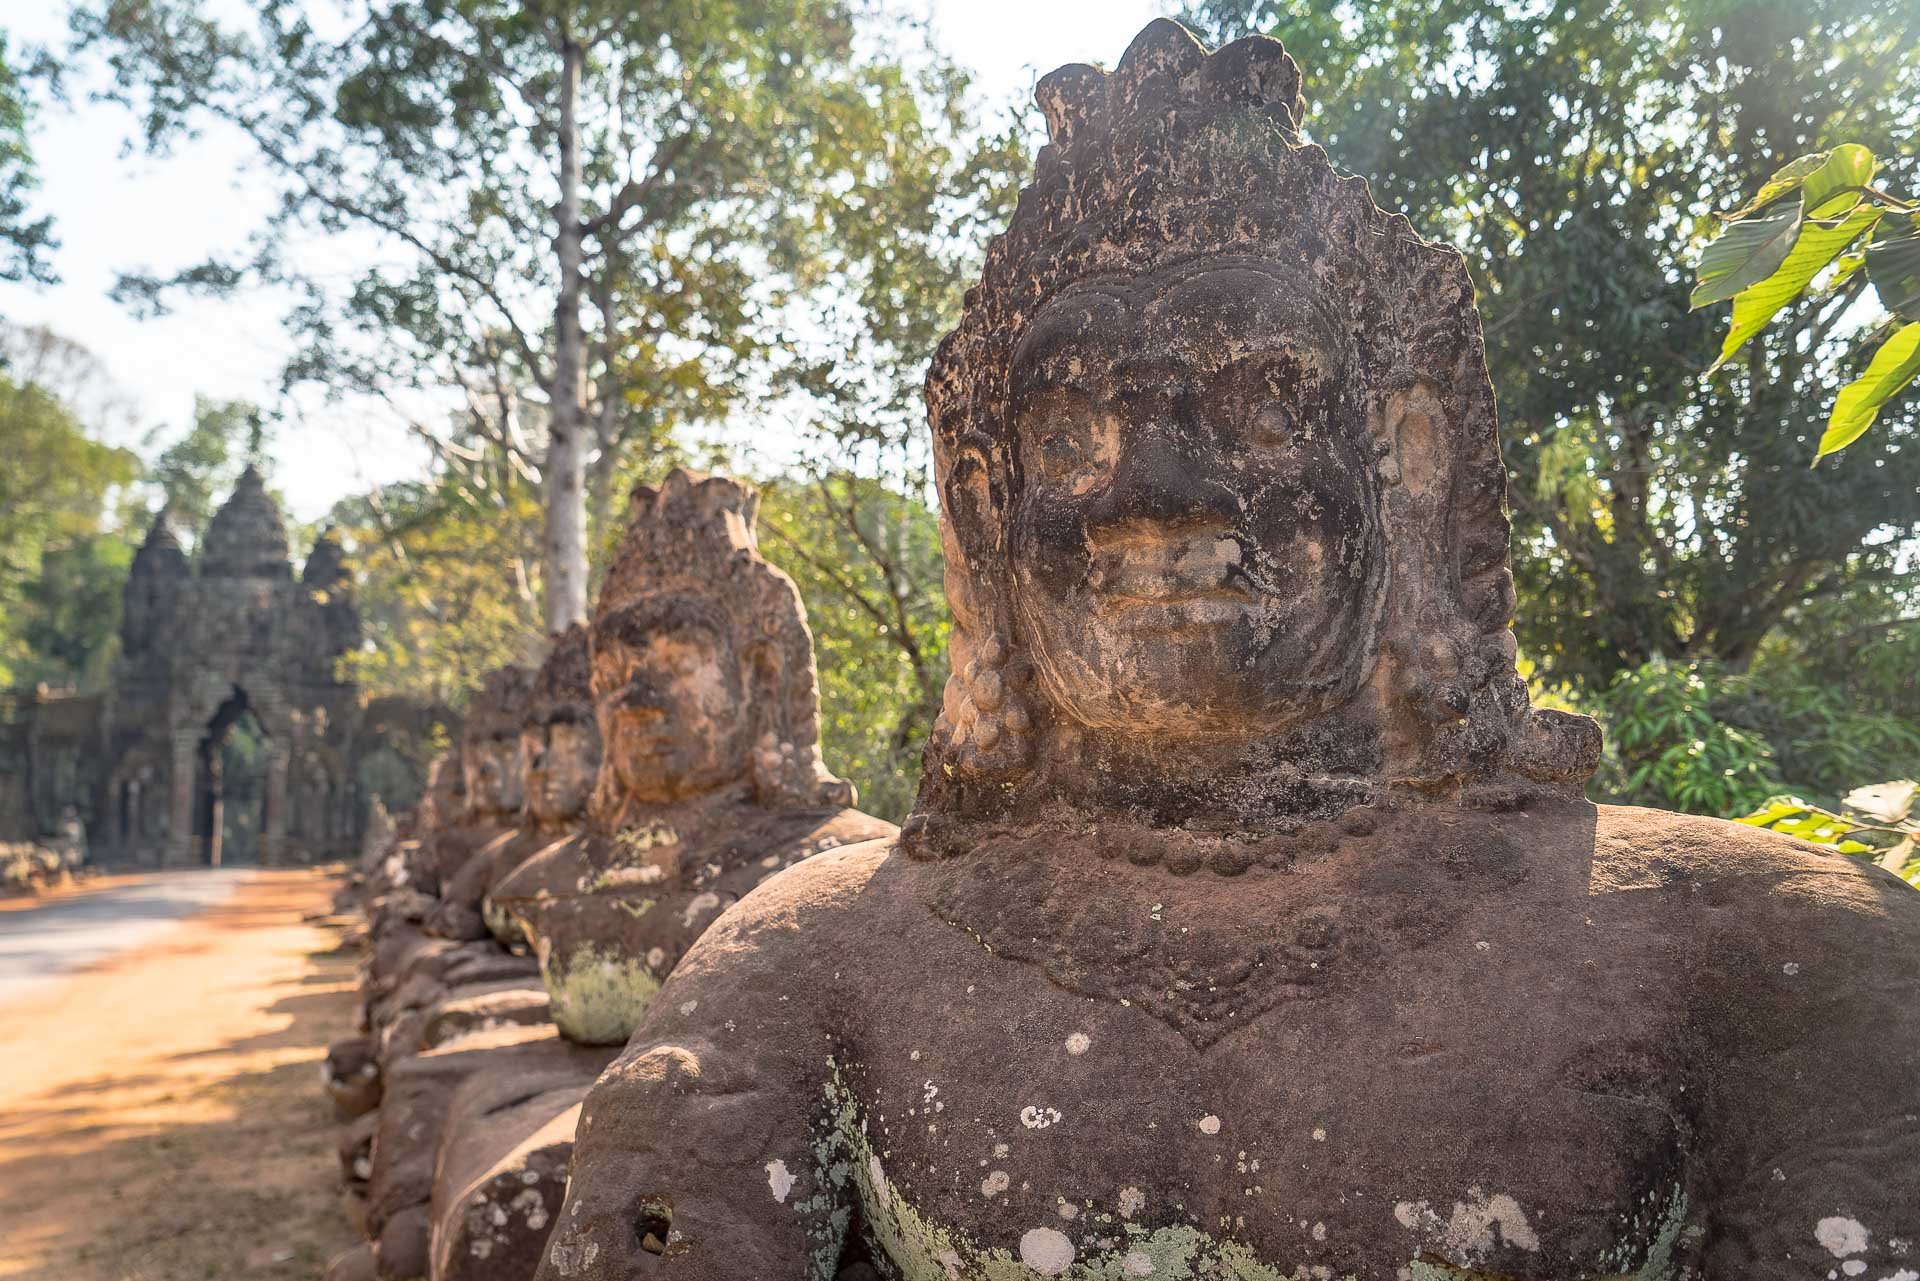 Lesvoyageuses-guide-voyage-Siem-reap-angkor-temples-Cambodge-47